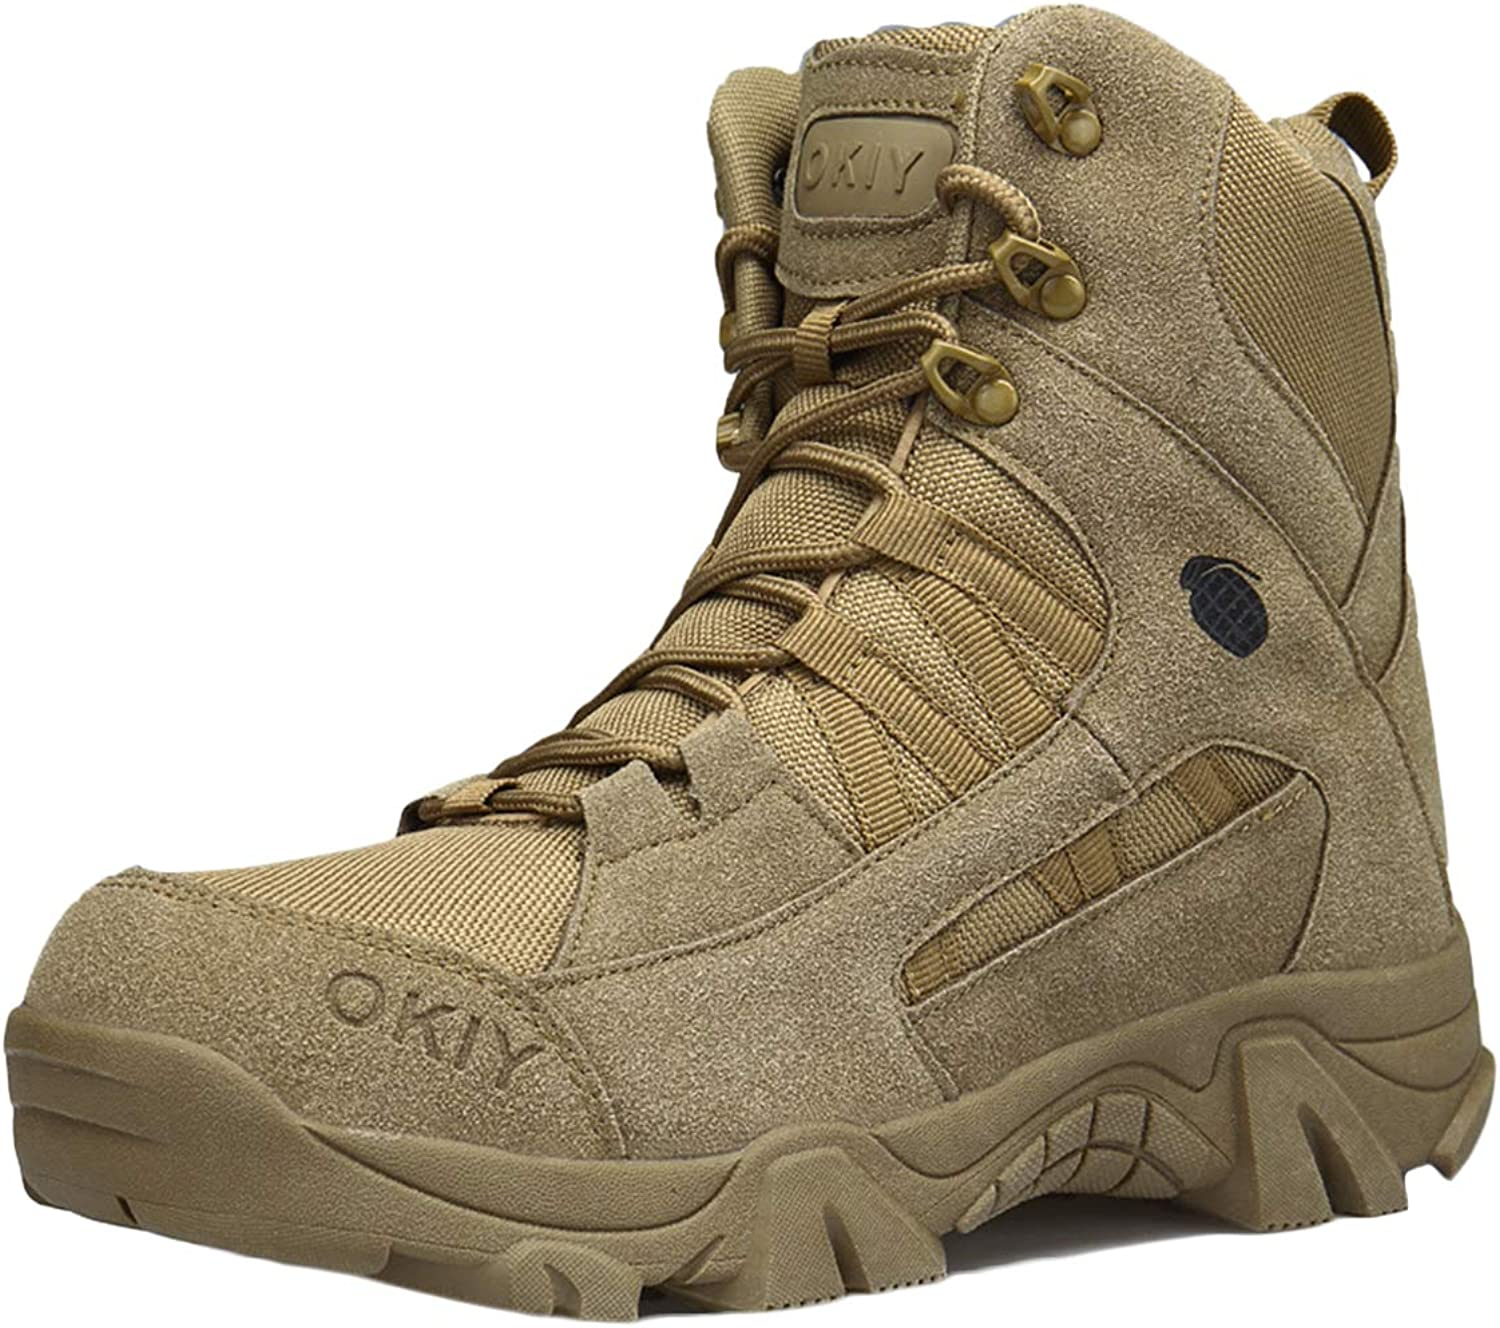 MERRYHE Men Tactical Boot Desert Combat Boot Military Boots Outdoor Sports Camping Hiking shoes